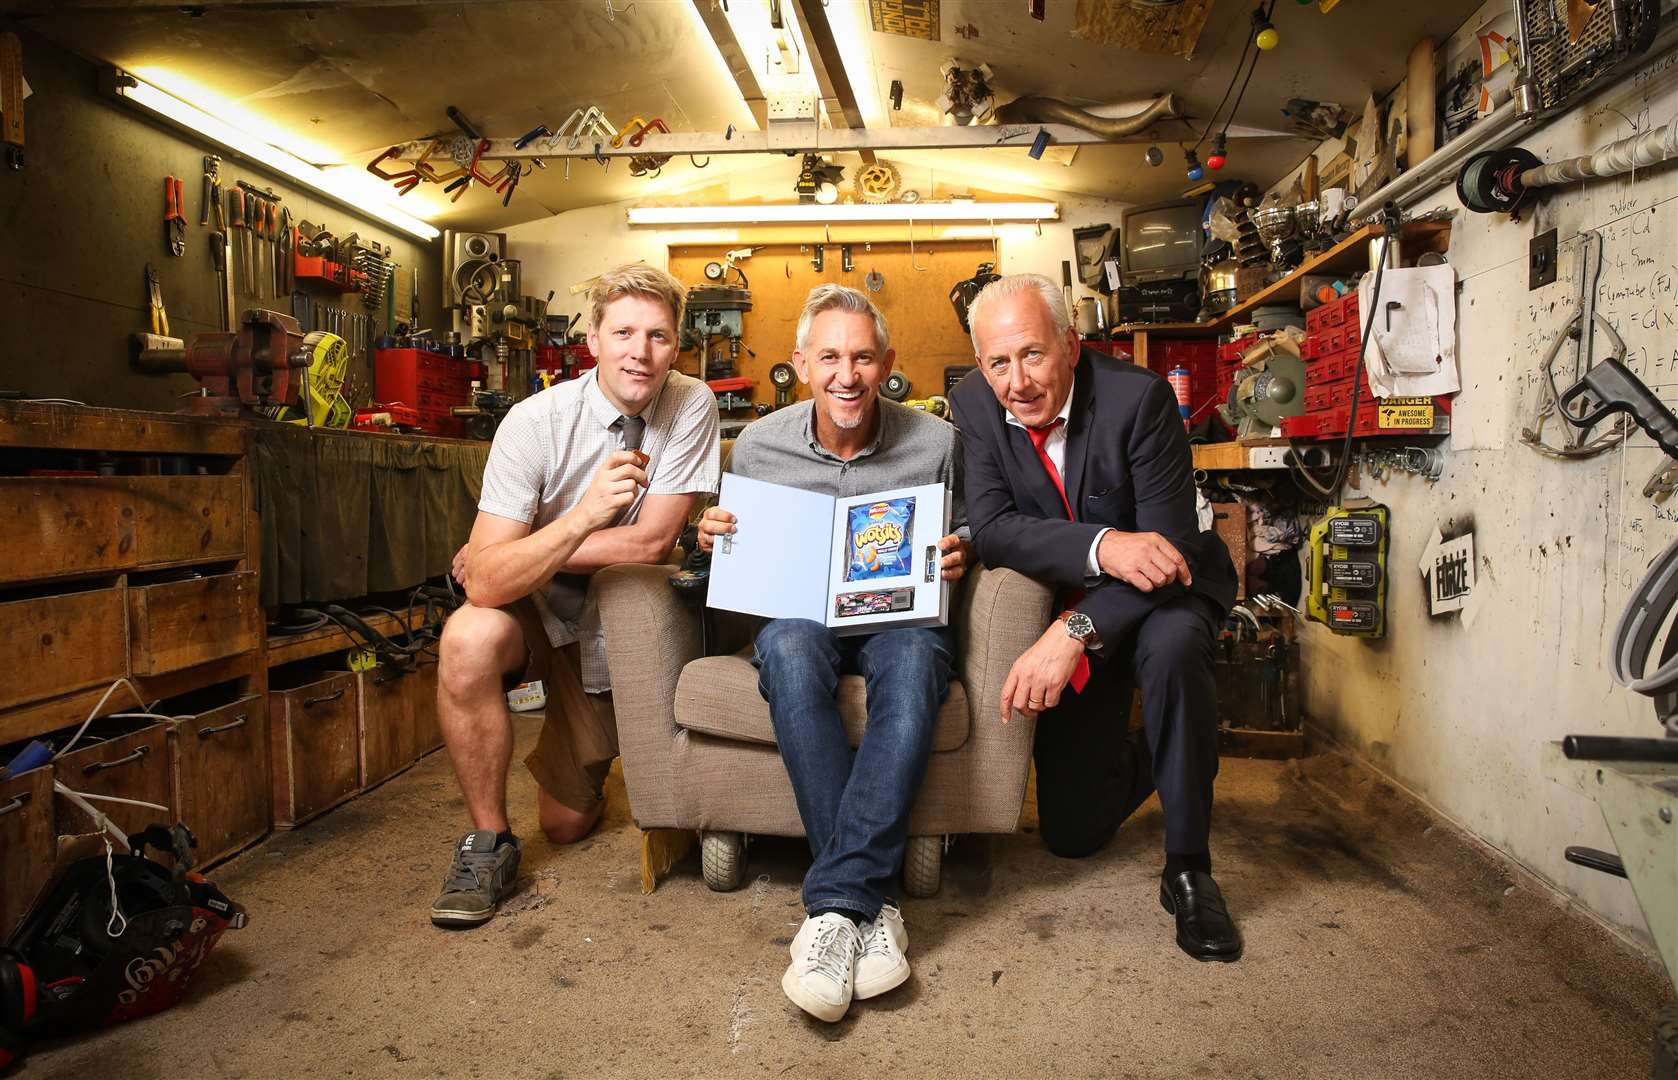 Colin Furze with Gary Lineker and Peter Bleksley